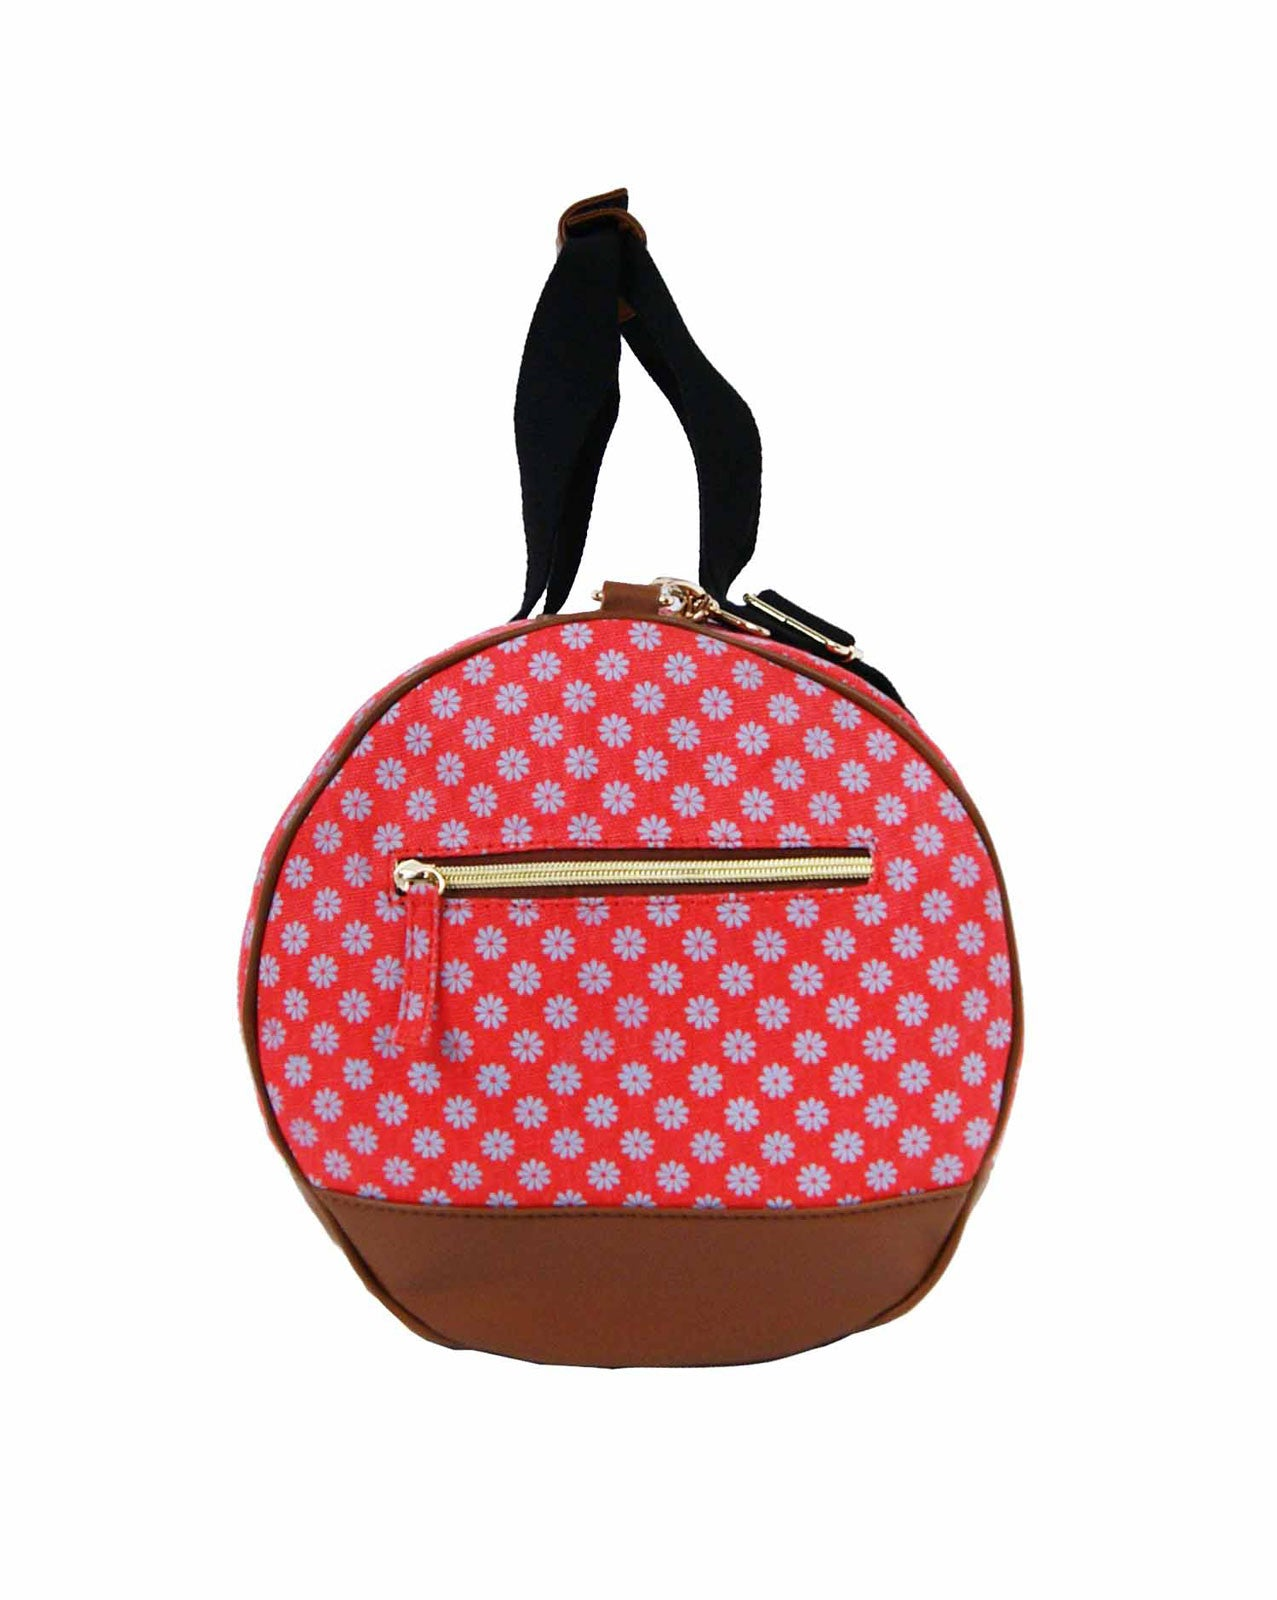 Overnight Duffle Wallflower Print Bag QL6155P end view